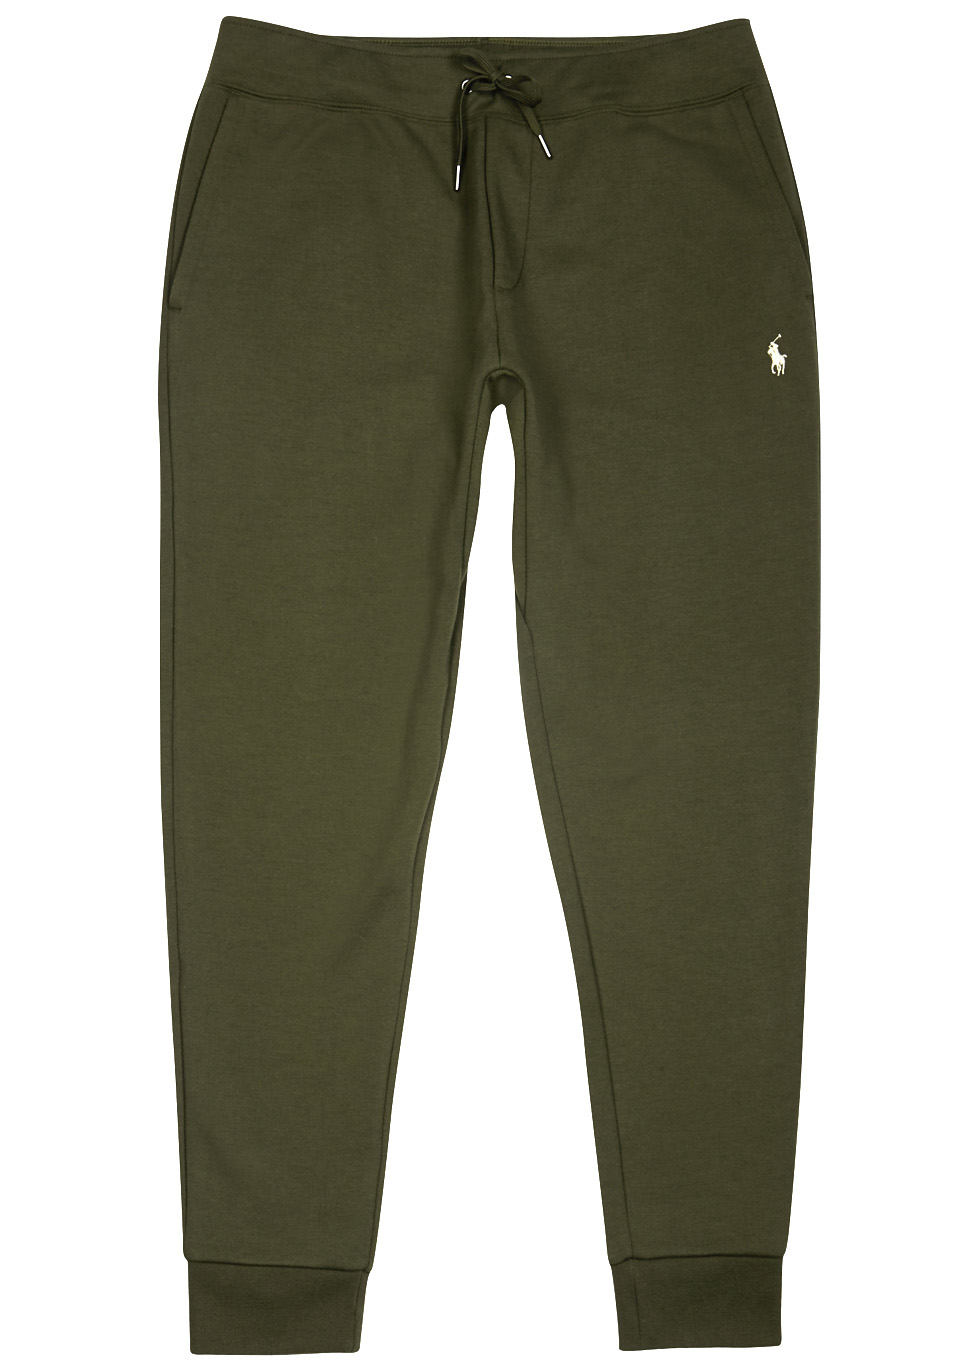 Olive jersey jogging trousers - Polo Ralph Lauren